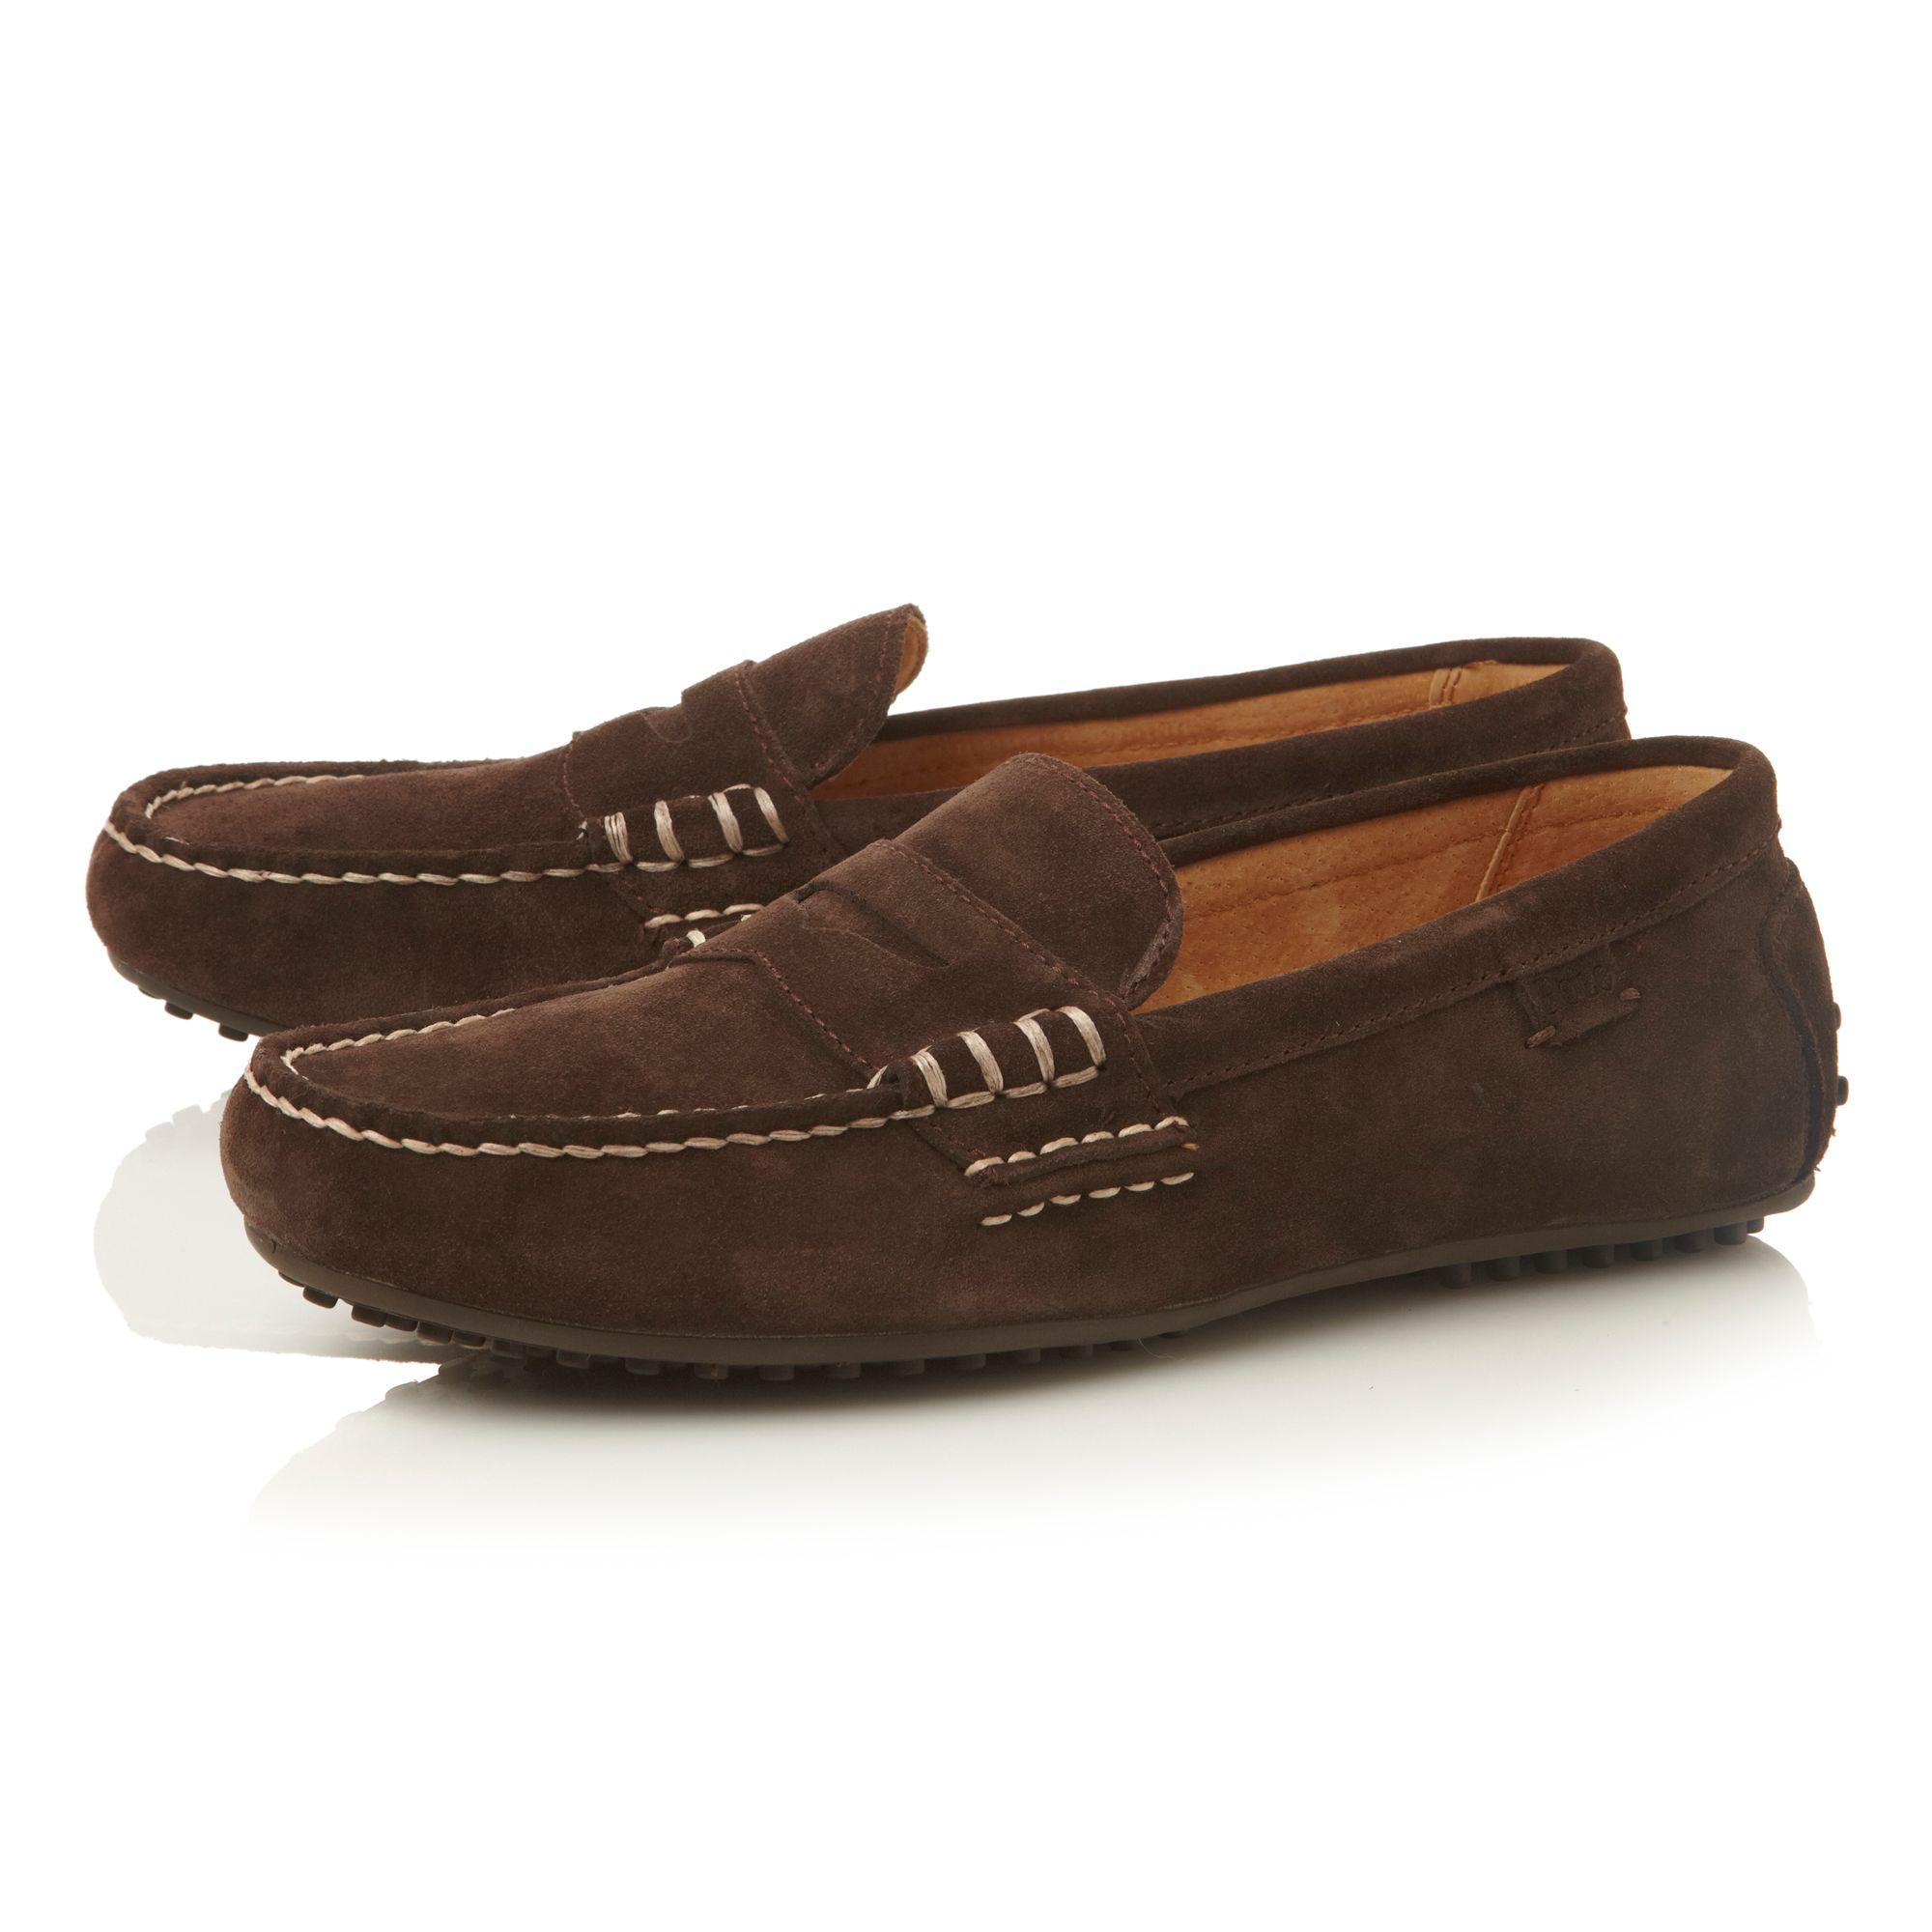 Lauren Men Suede Loafer Polo Penny Brown Stitch For Wes Ralph Detail uTKJ13lFc